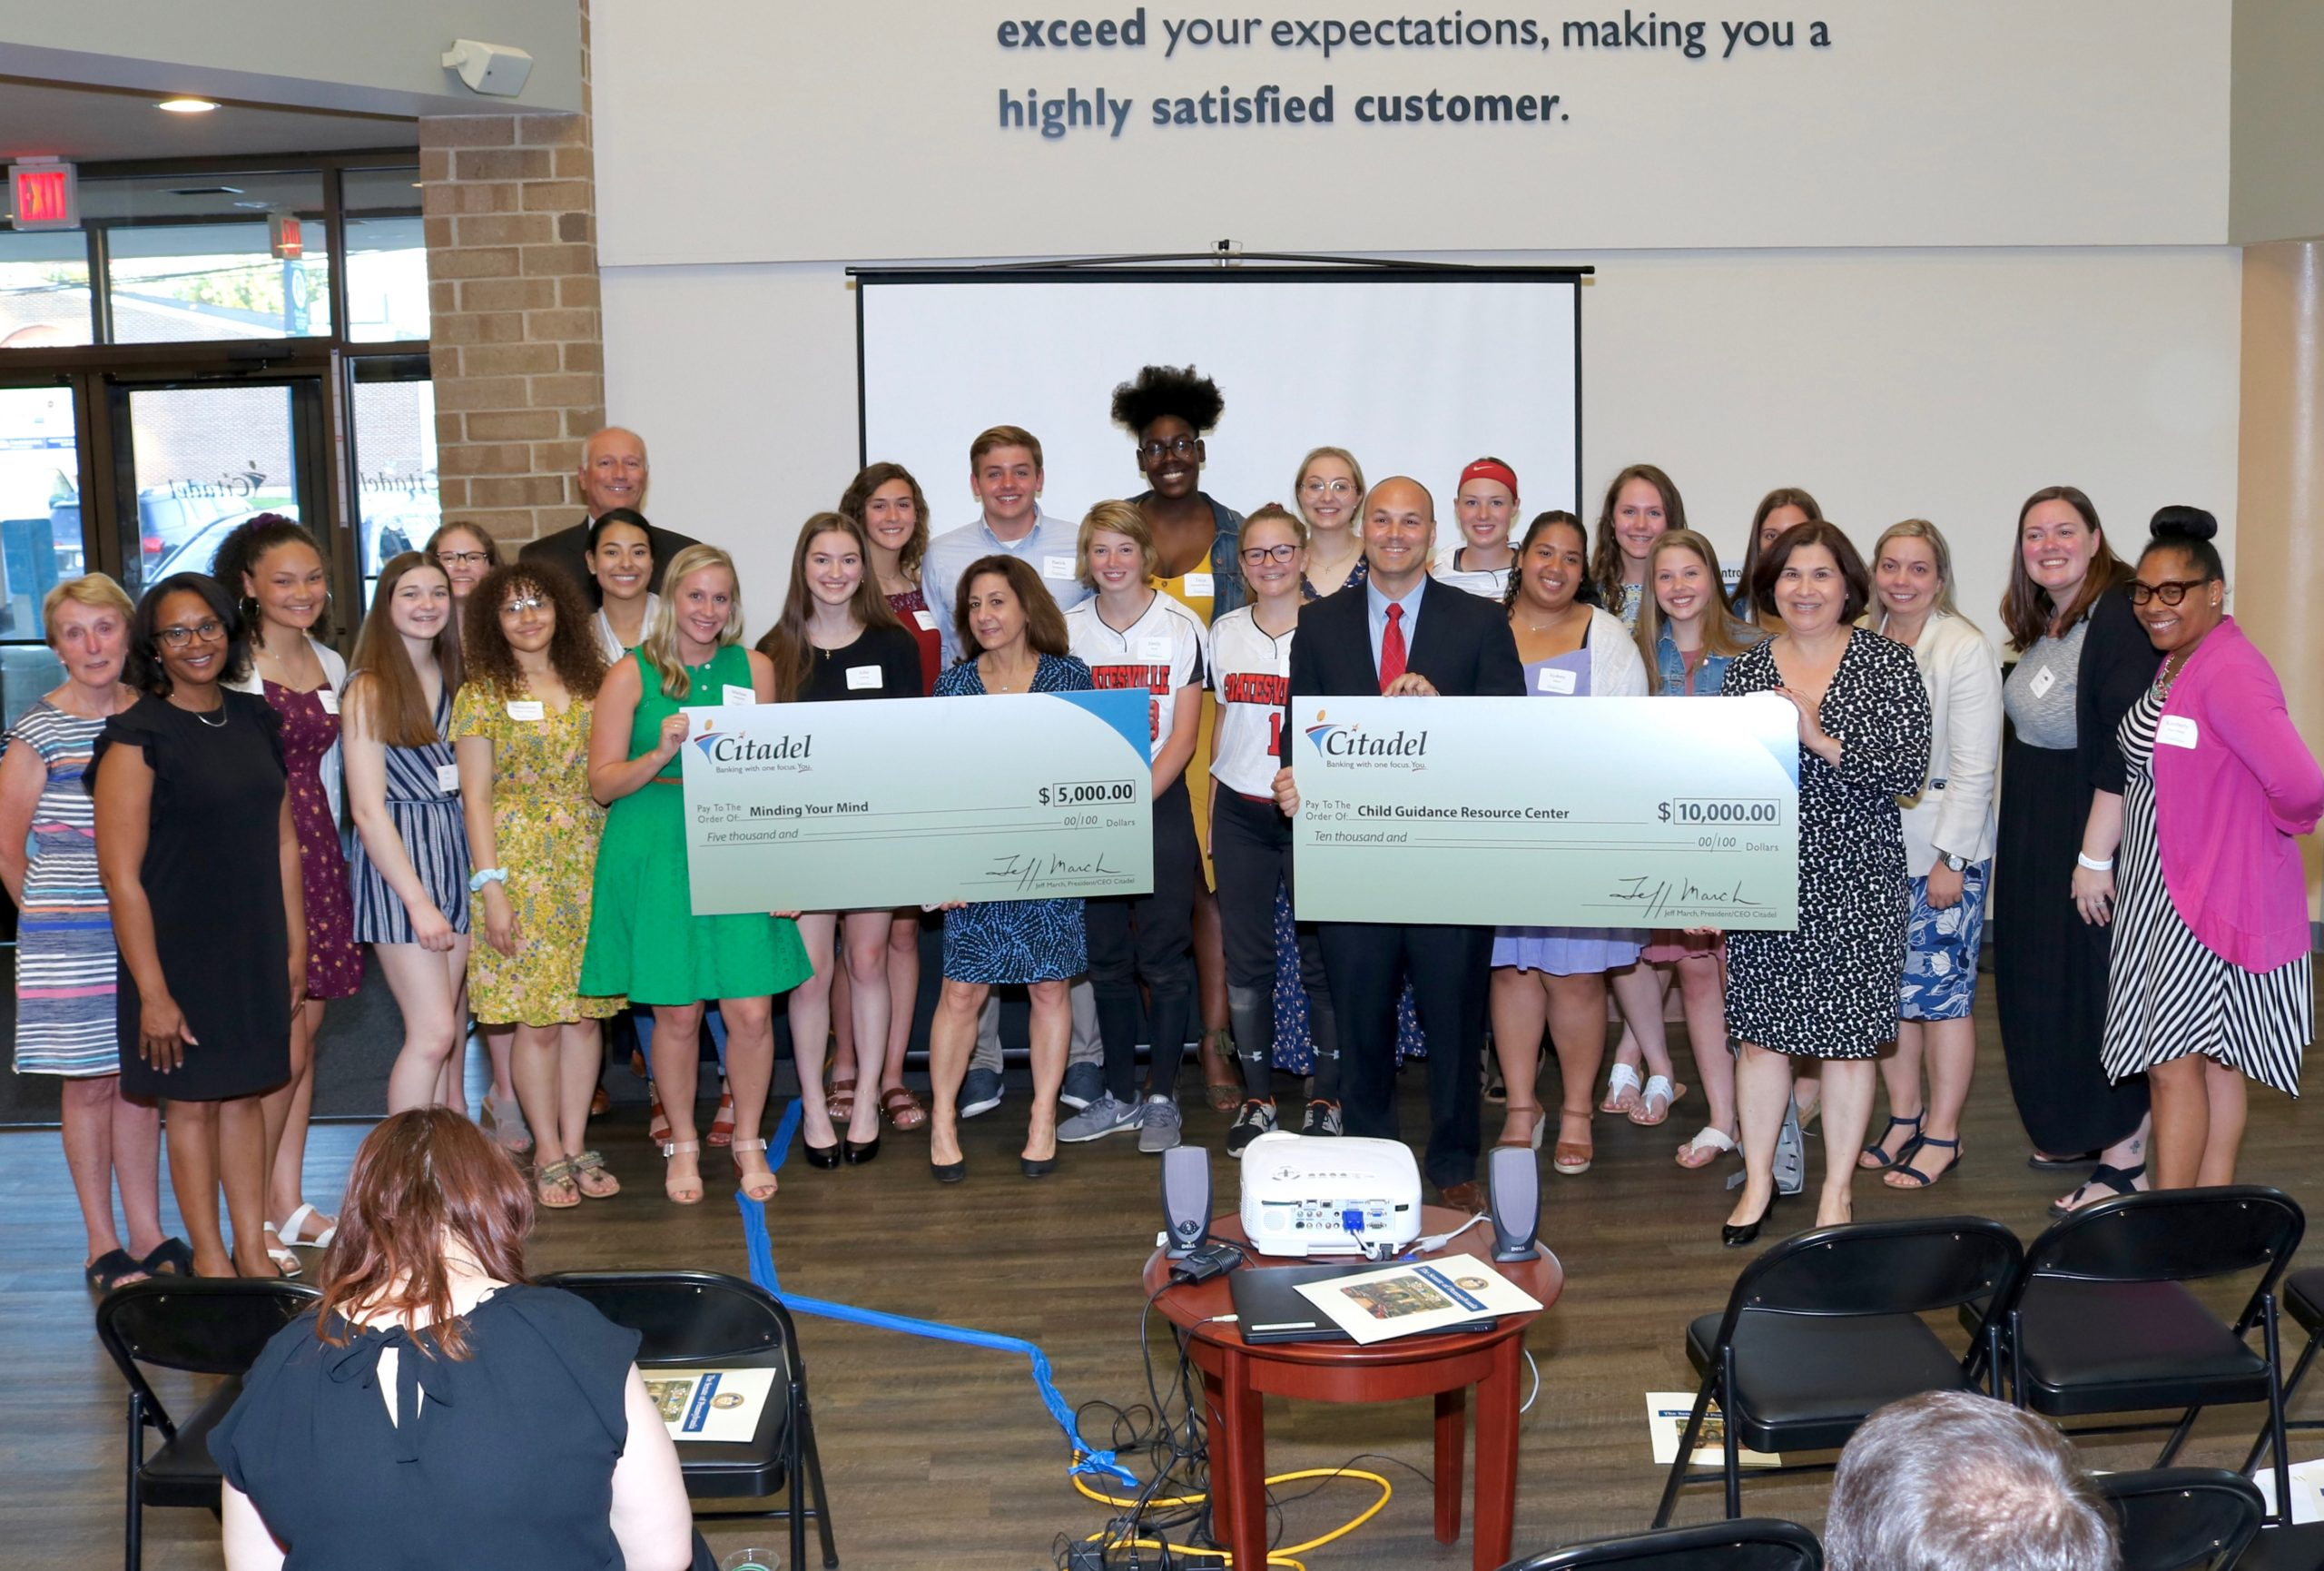 Coatesville Area Youth Philanthropists Award $15,000 to Prevent Teen Suicide in Chester County